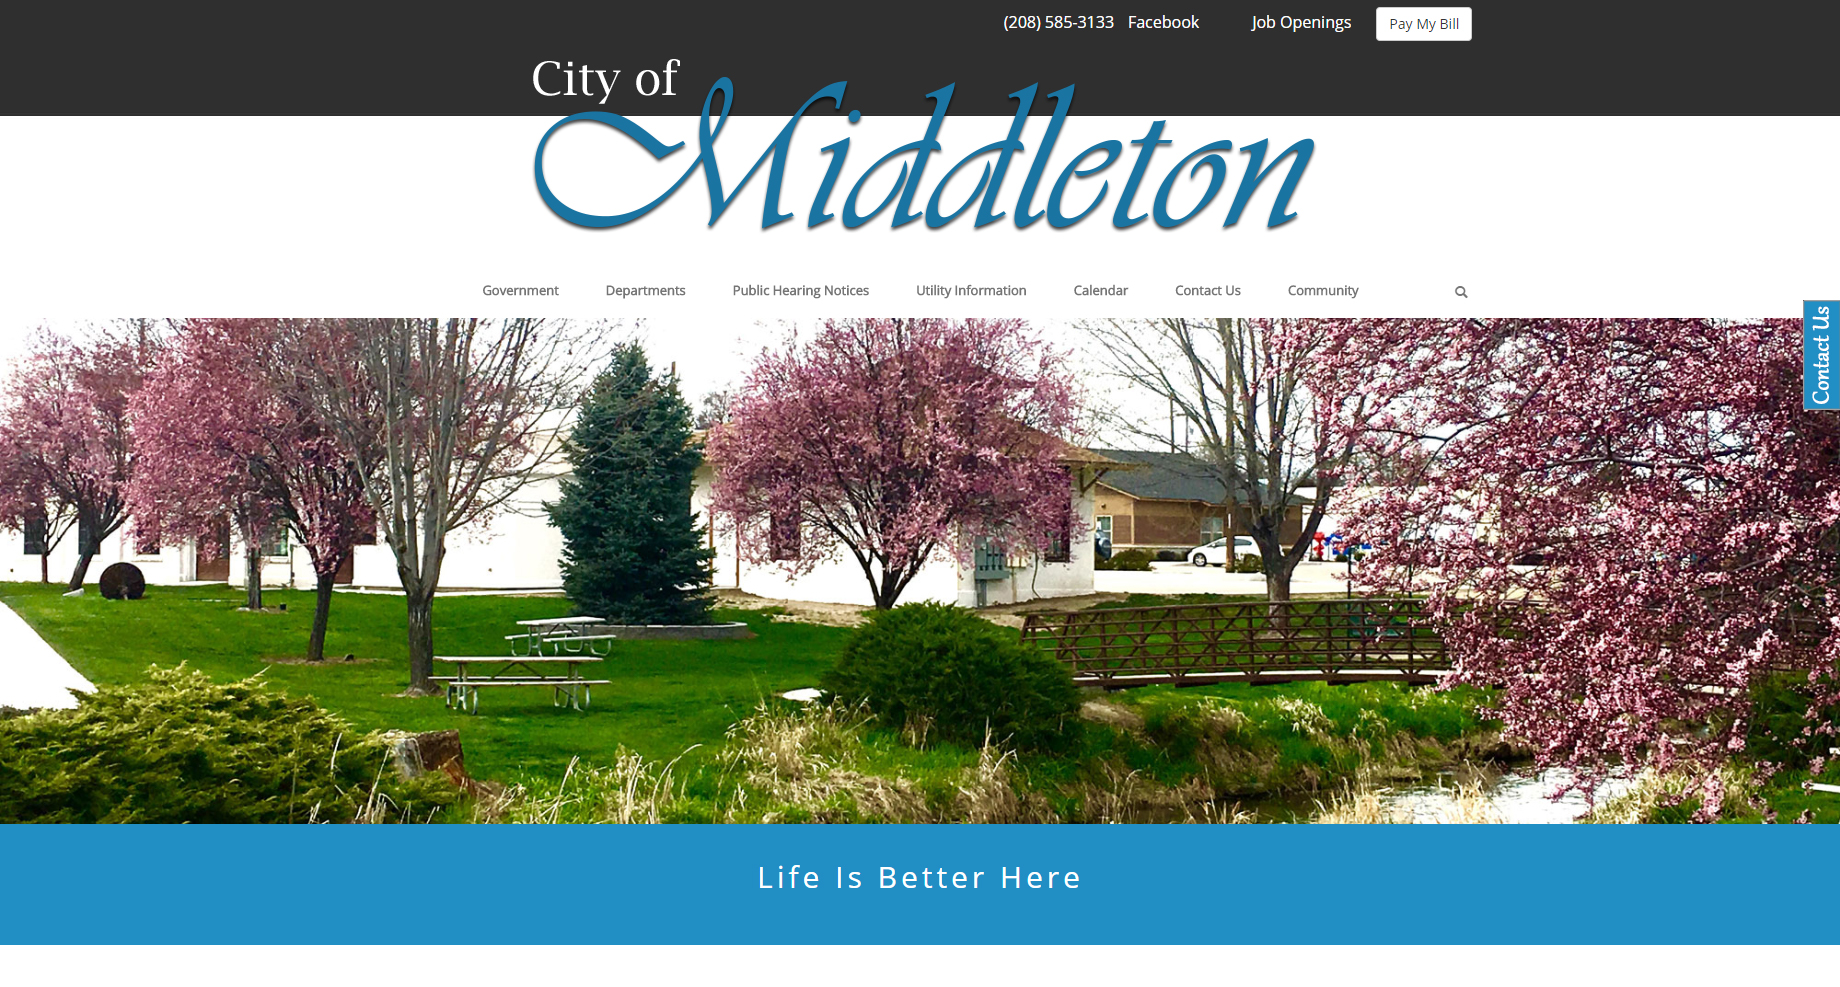 City of Middleton